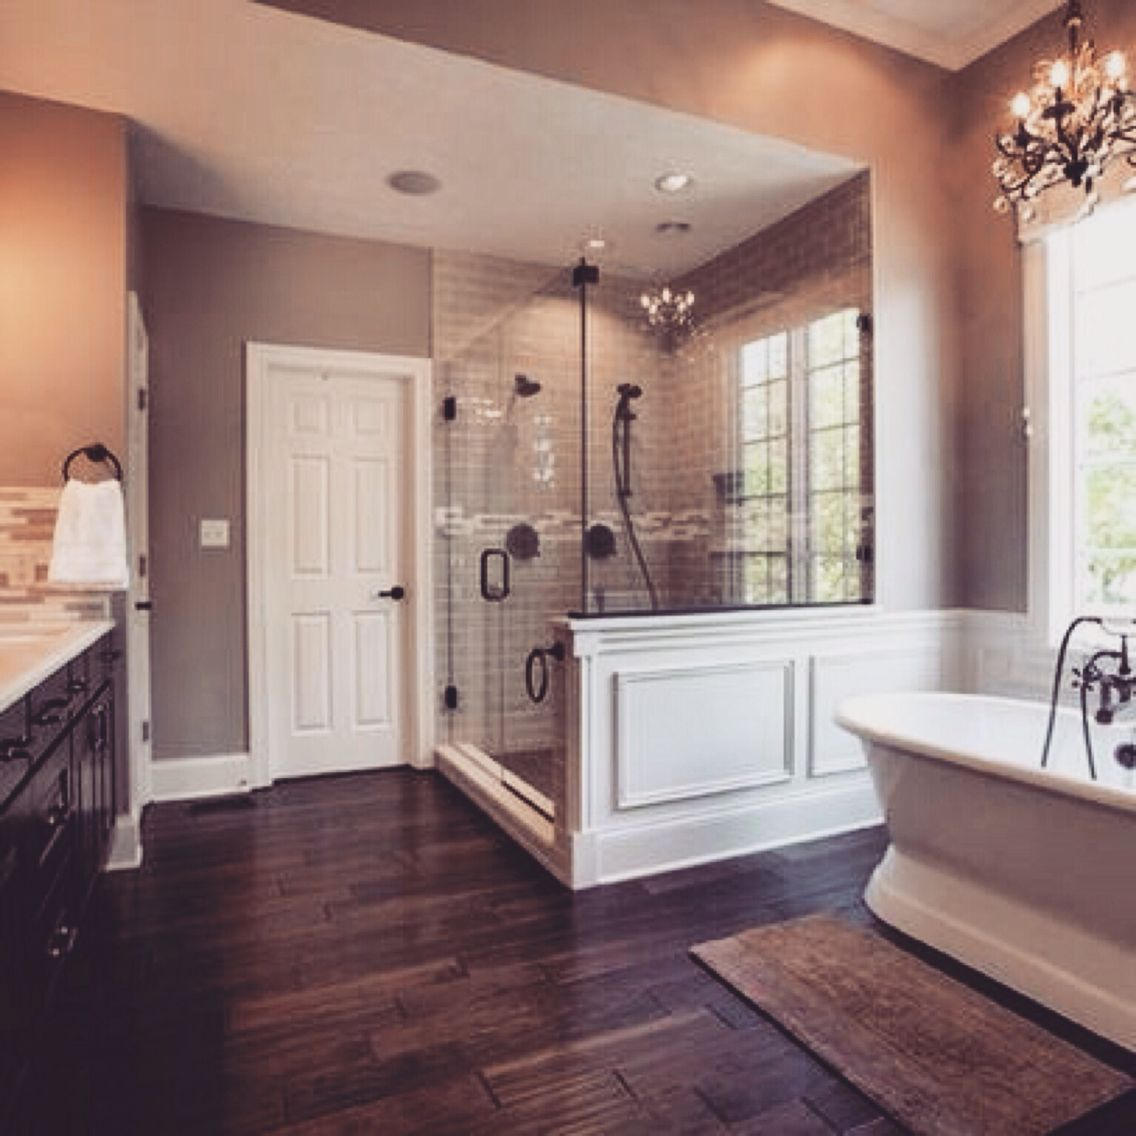 Beautiful Master Bath Love The Hardwood Tiles Gorgeous Shower And Freestanding Tub More Home Bathroom Remodel Master Dream Bathrooms